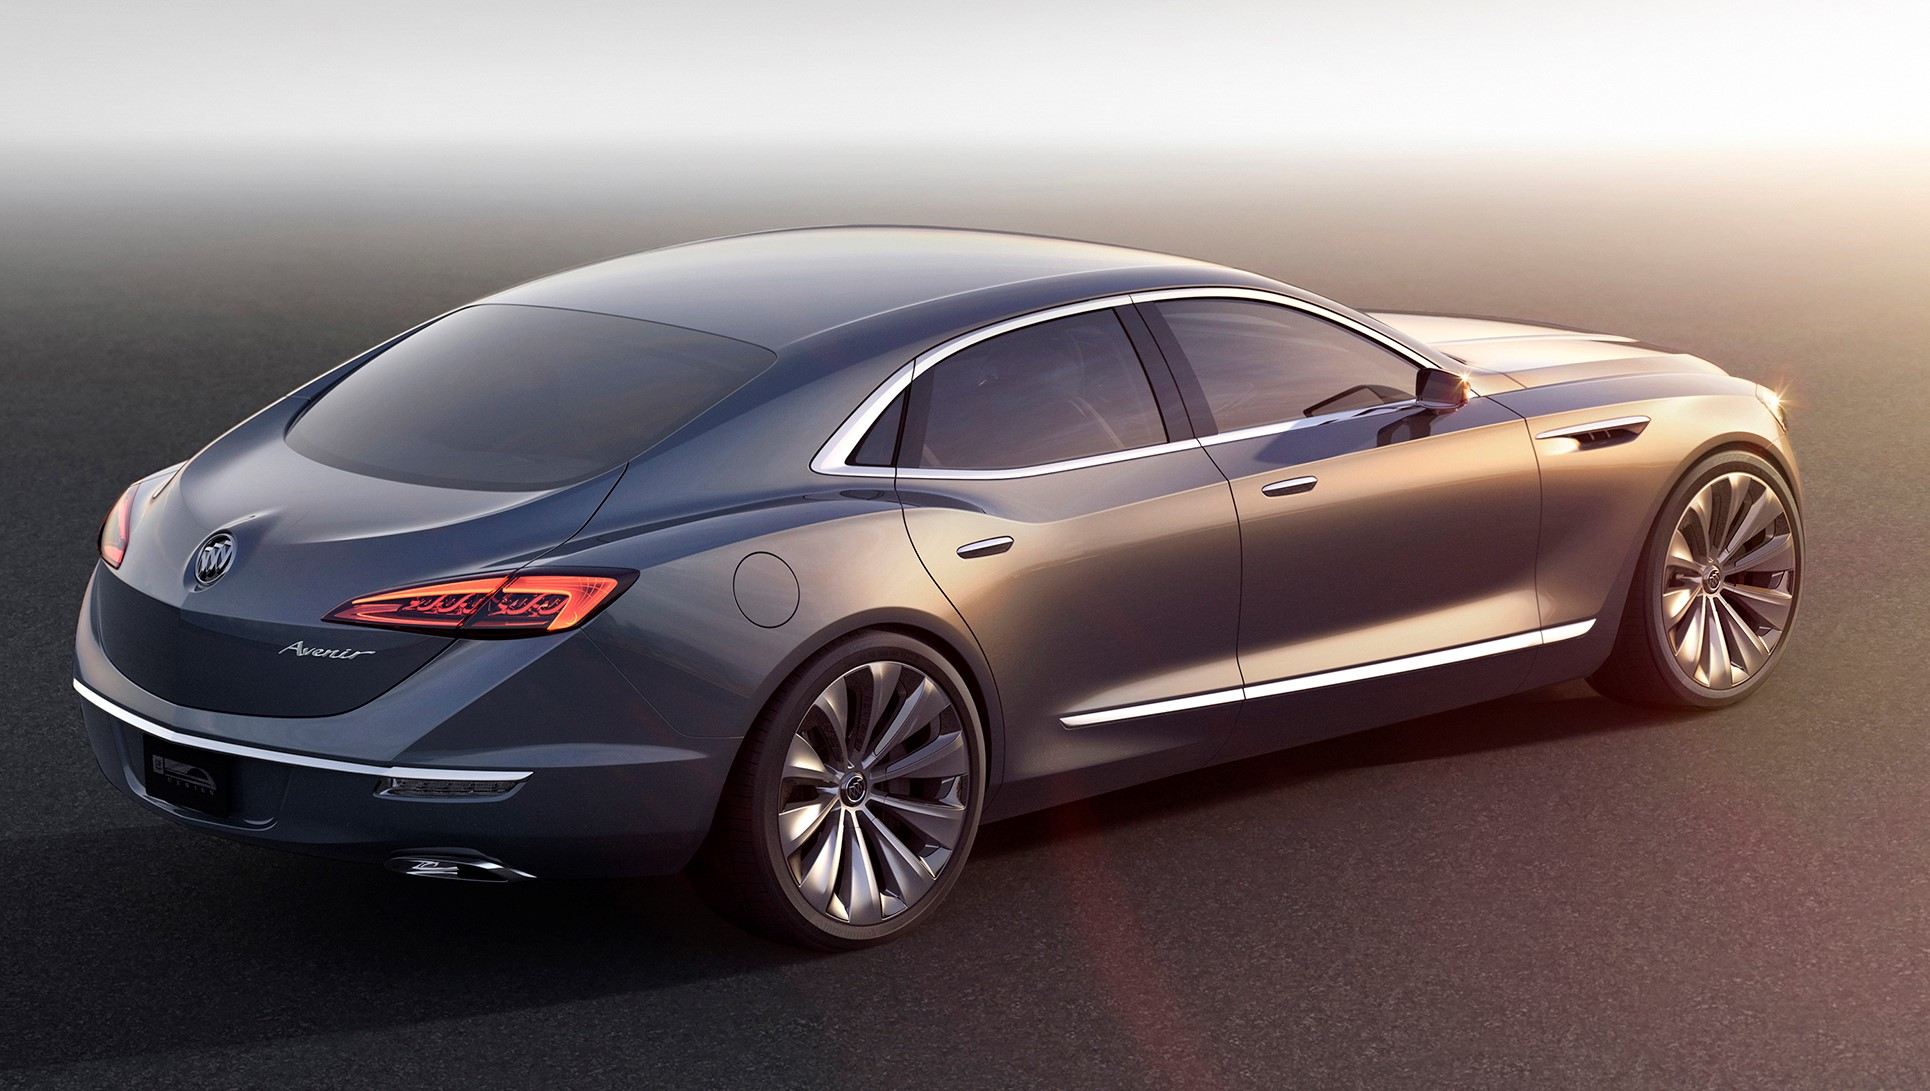 Buick Avenir Buick Looks To The Future Metro Weekly HD Wallpapers Download free images and photos [musssic.tk]